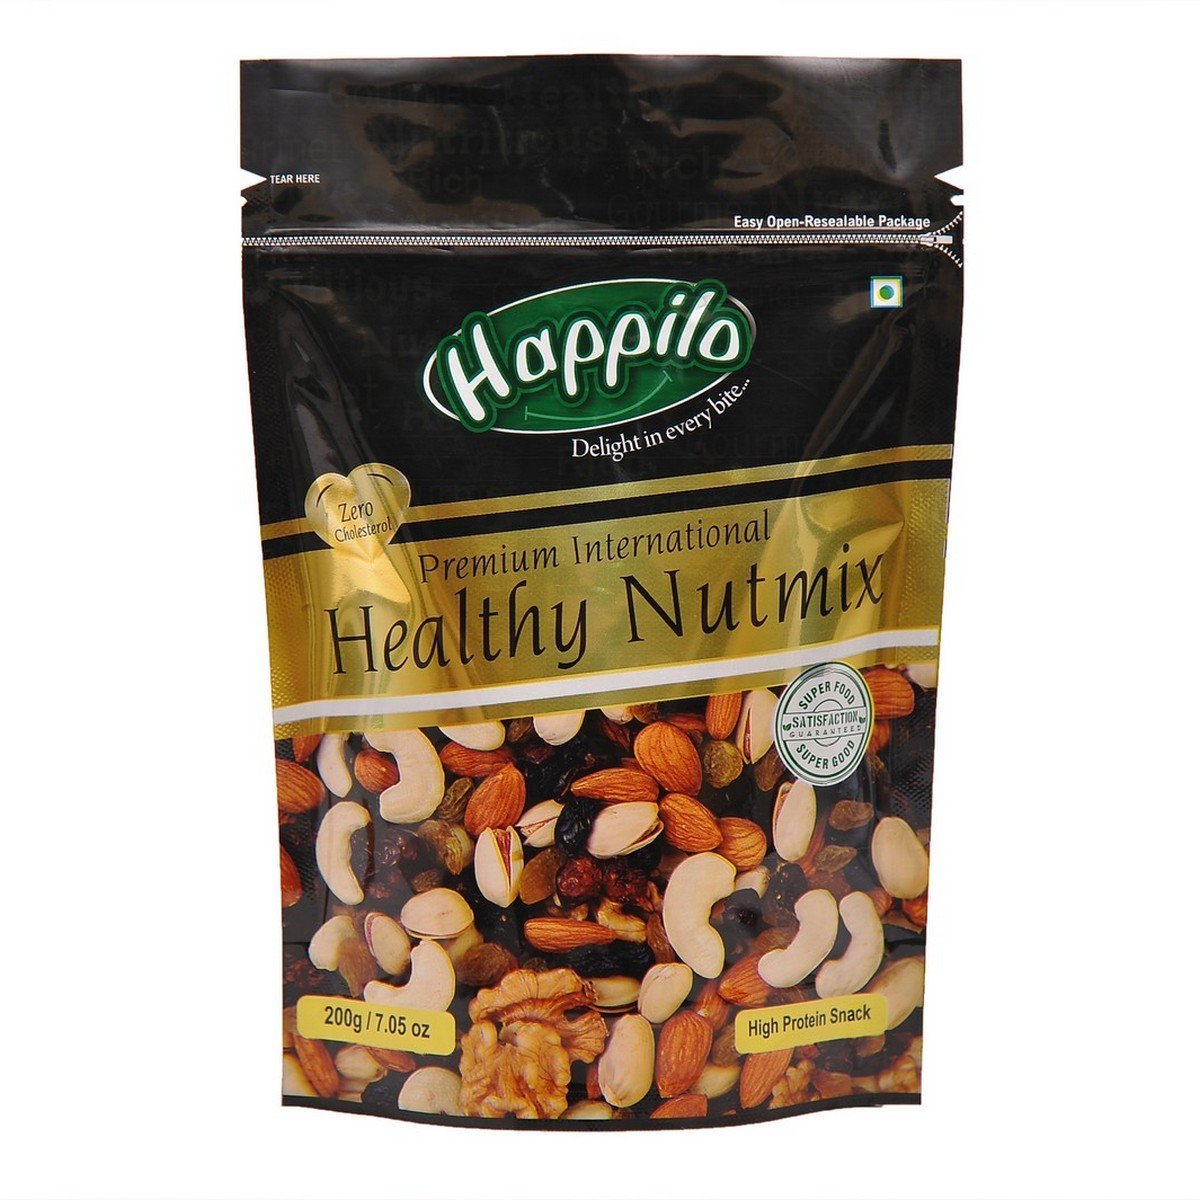 Happilo Premium International Healthy Nutmix